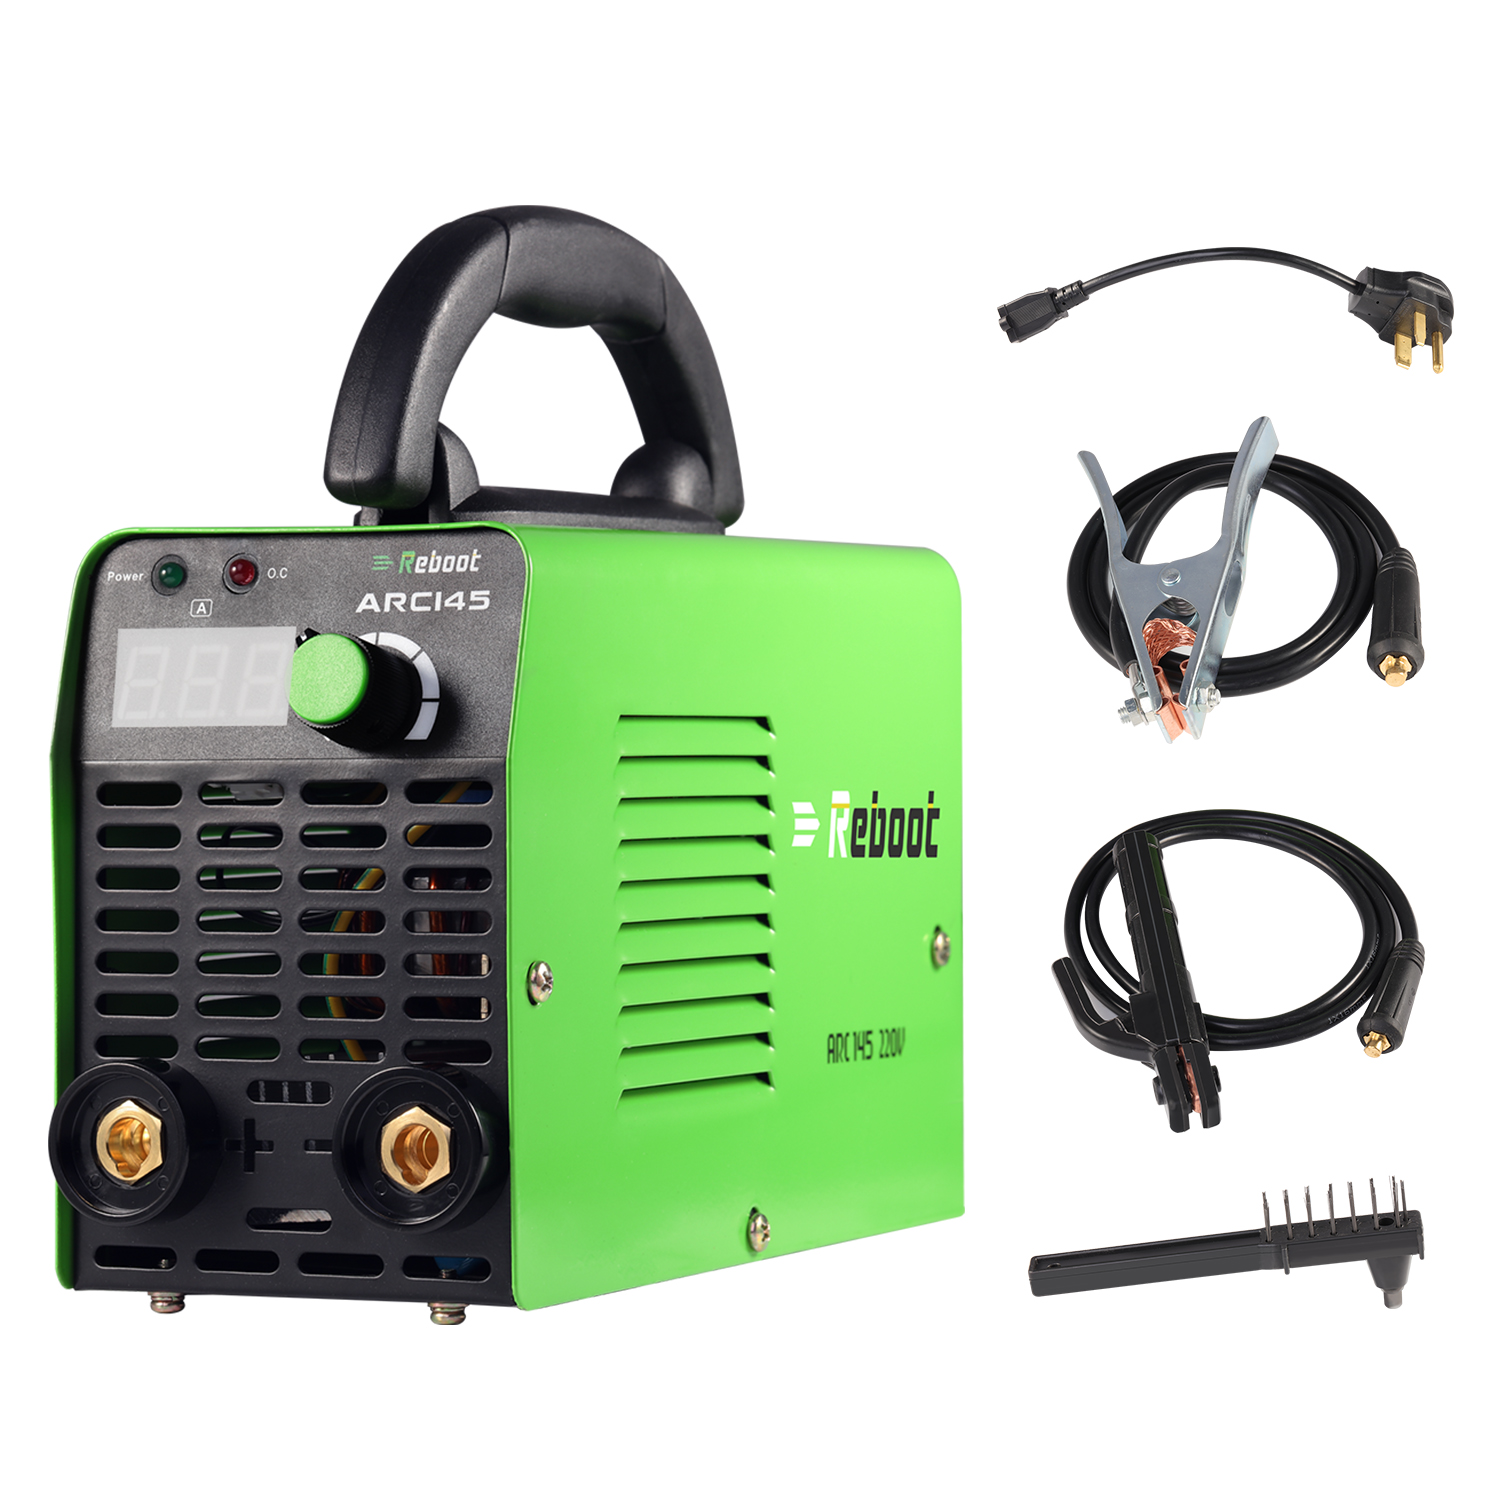 Reboot Stick Welder 145A AC 110V/220V MMA Inverter Dual Volts ARC Welding Machine Mini 1/16~1/8 Inch Electrode Portable Welder